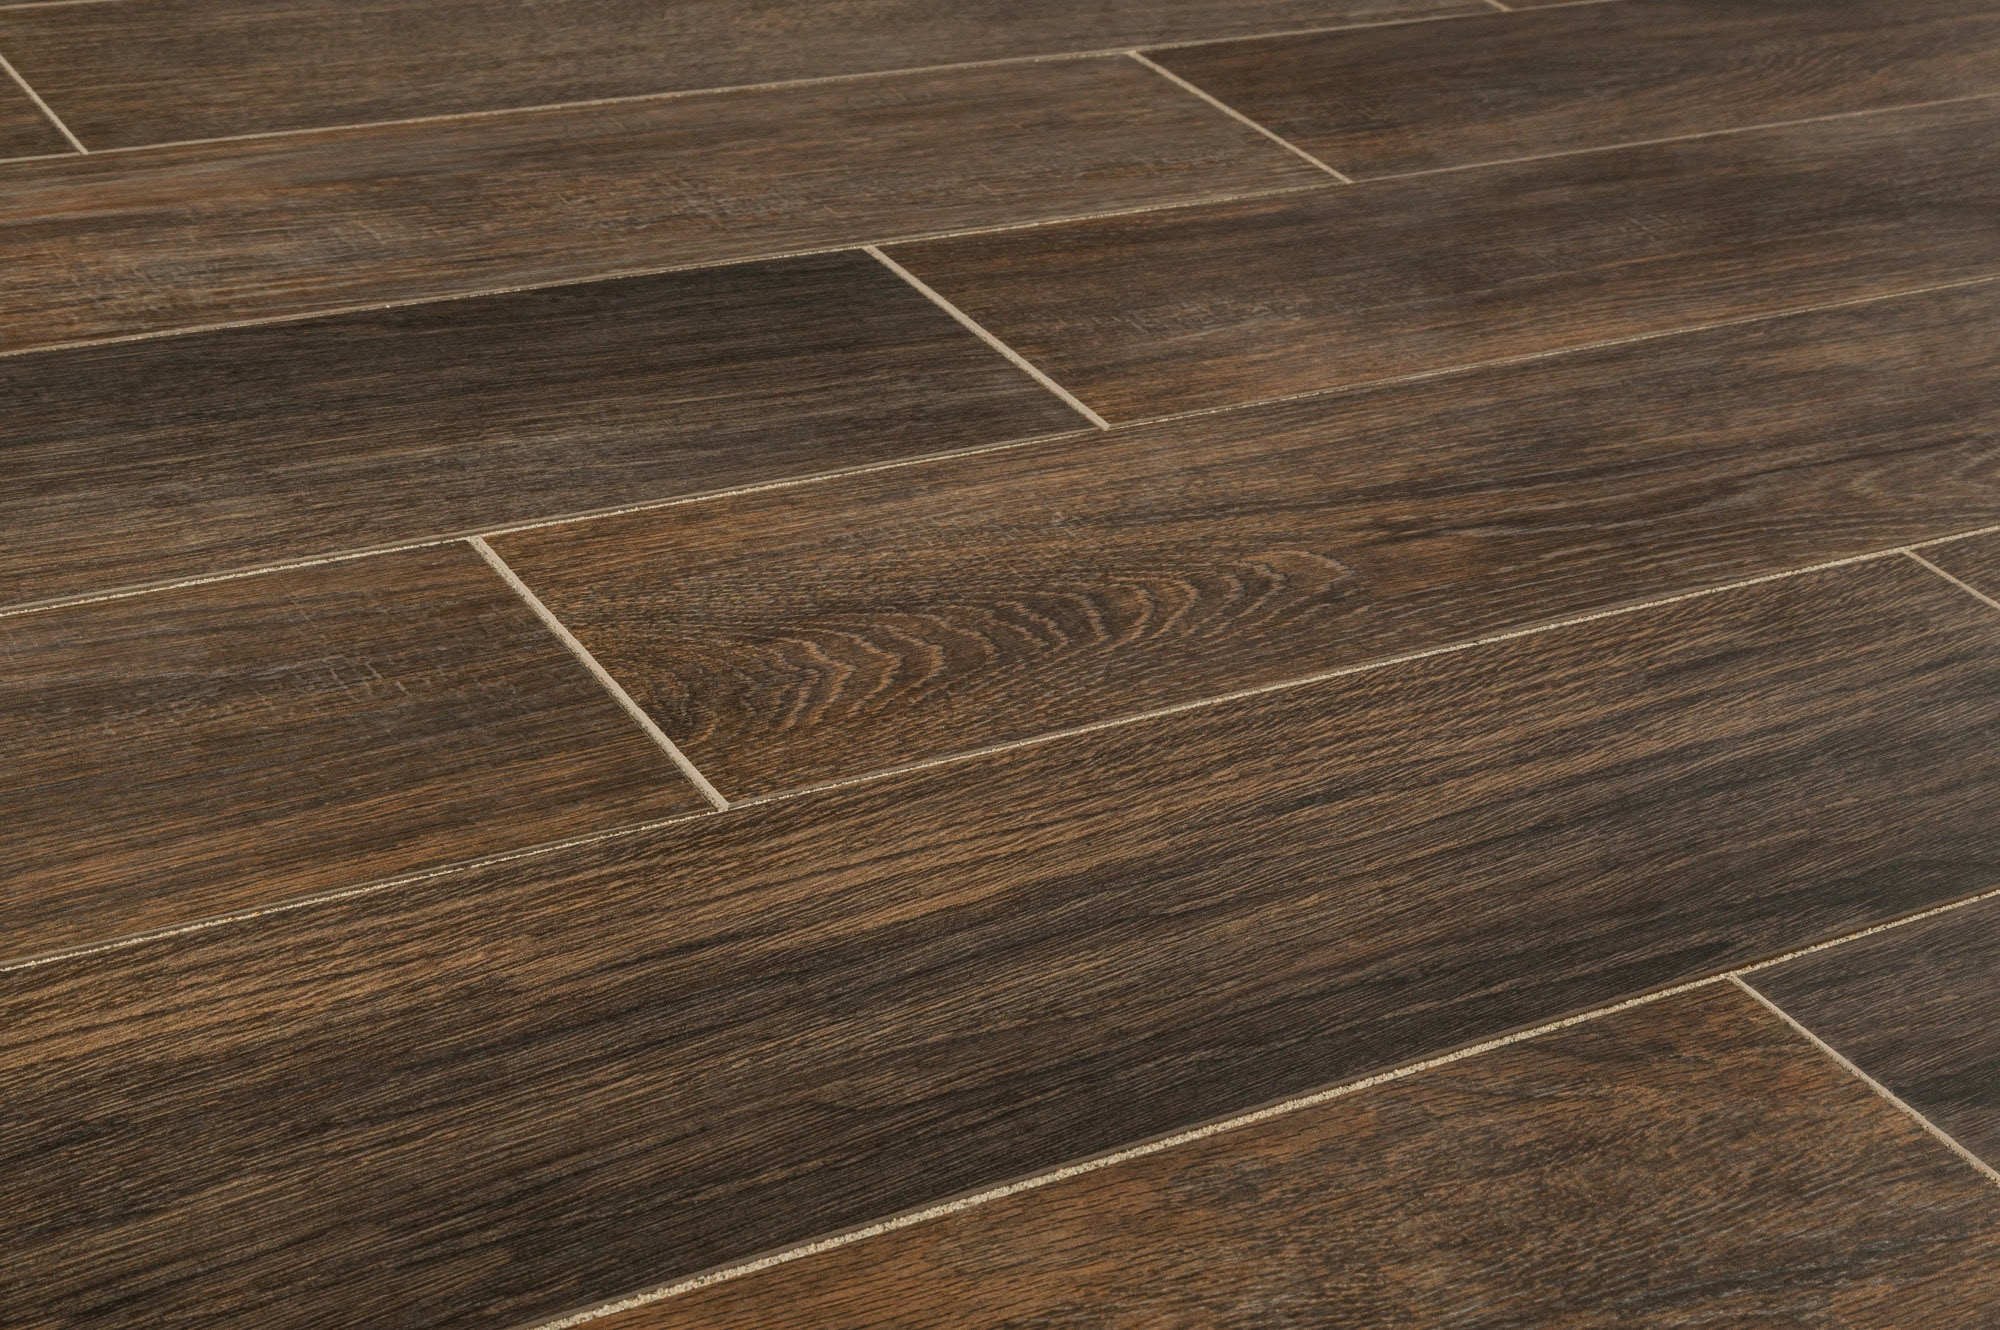 Takla porcelain tile totem series made in usa beech 6x24 dailygadgetfo Image collections